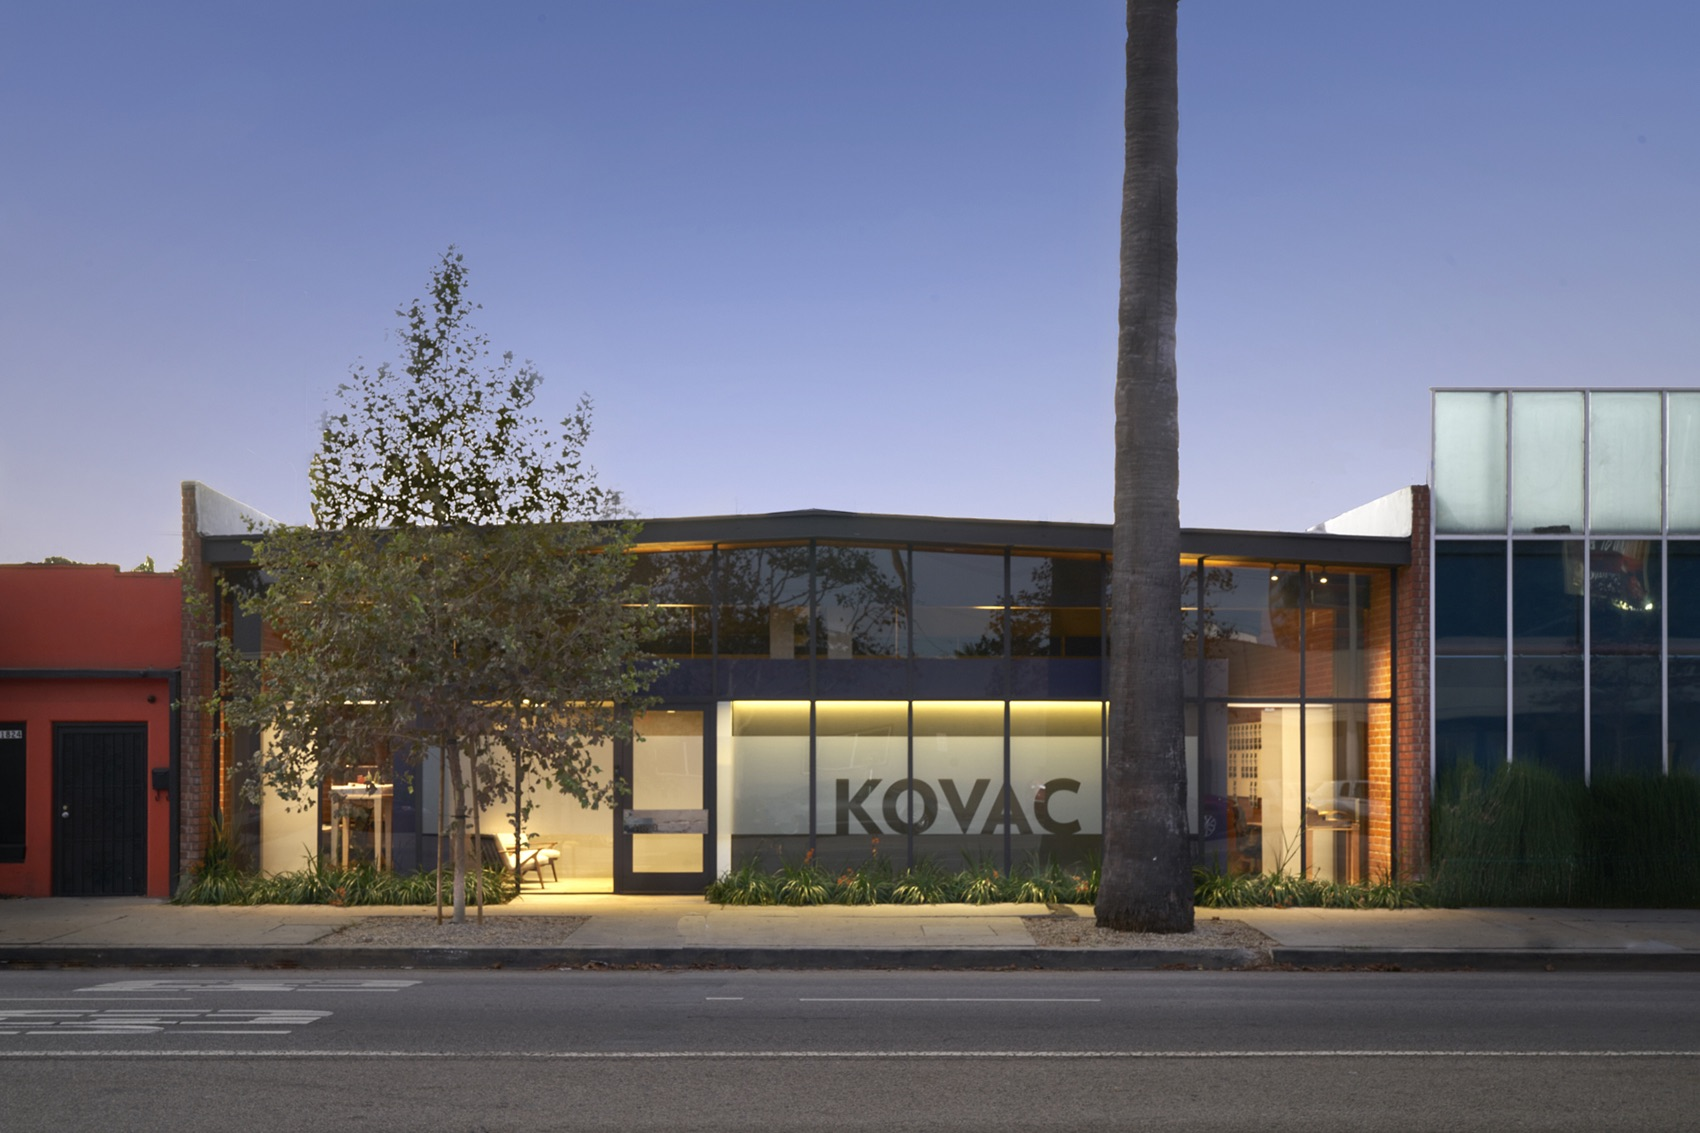 kovacs-design-studio-los-angeles-3